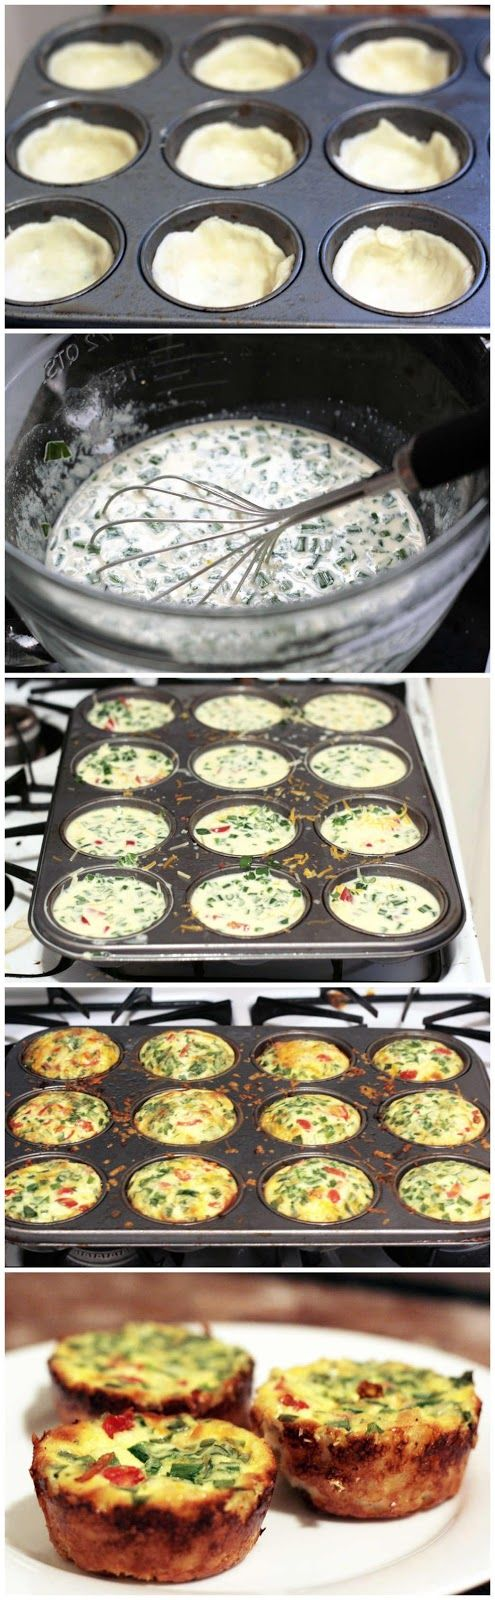 Gonna make these tonight for breakfasts this week!  Easy Mini Quiche Recip